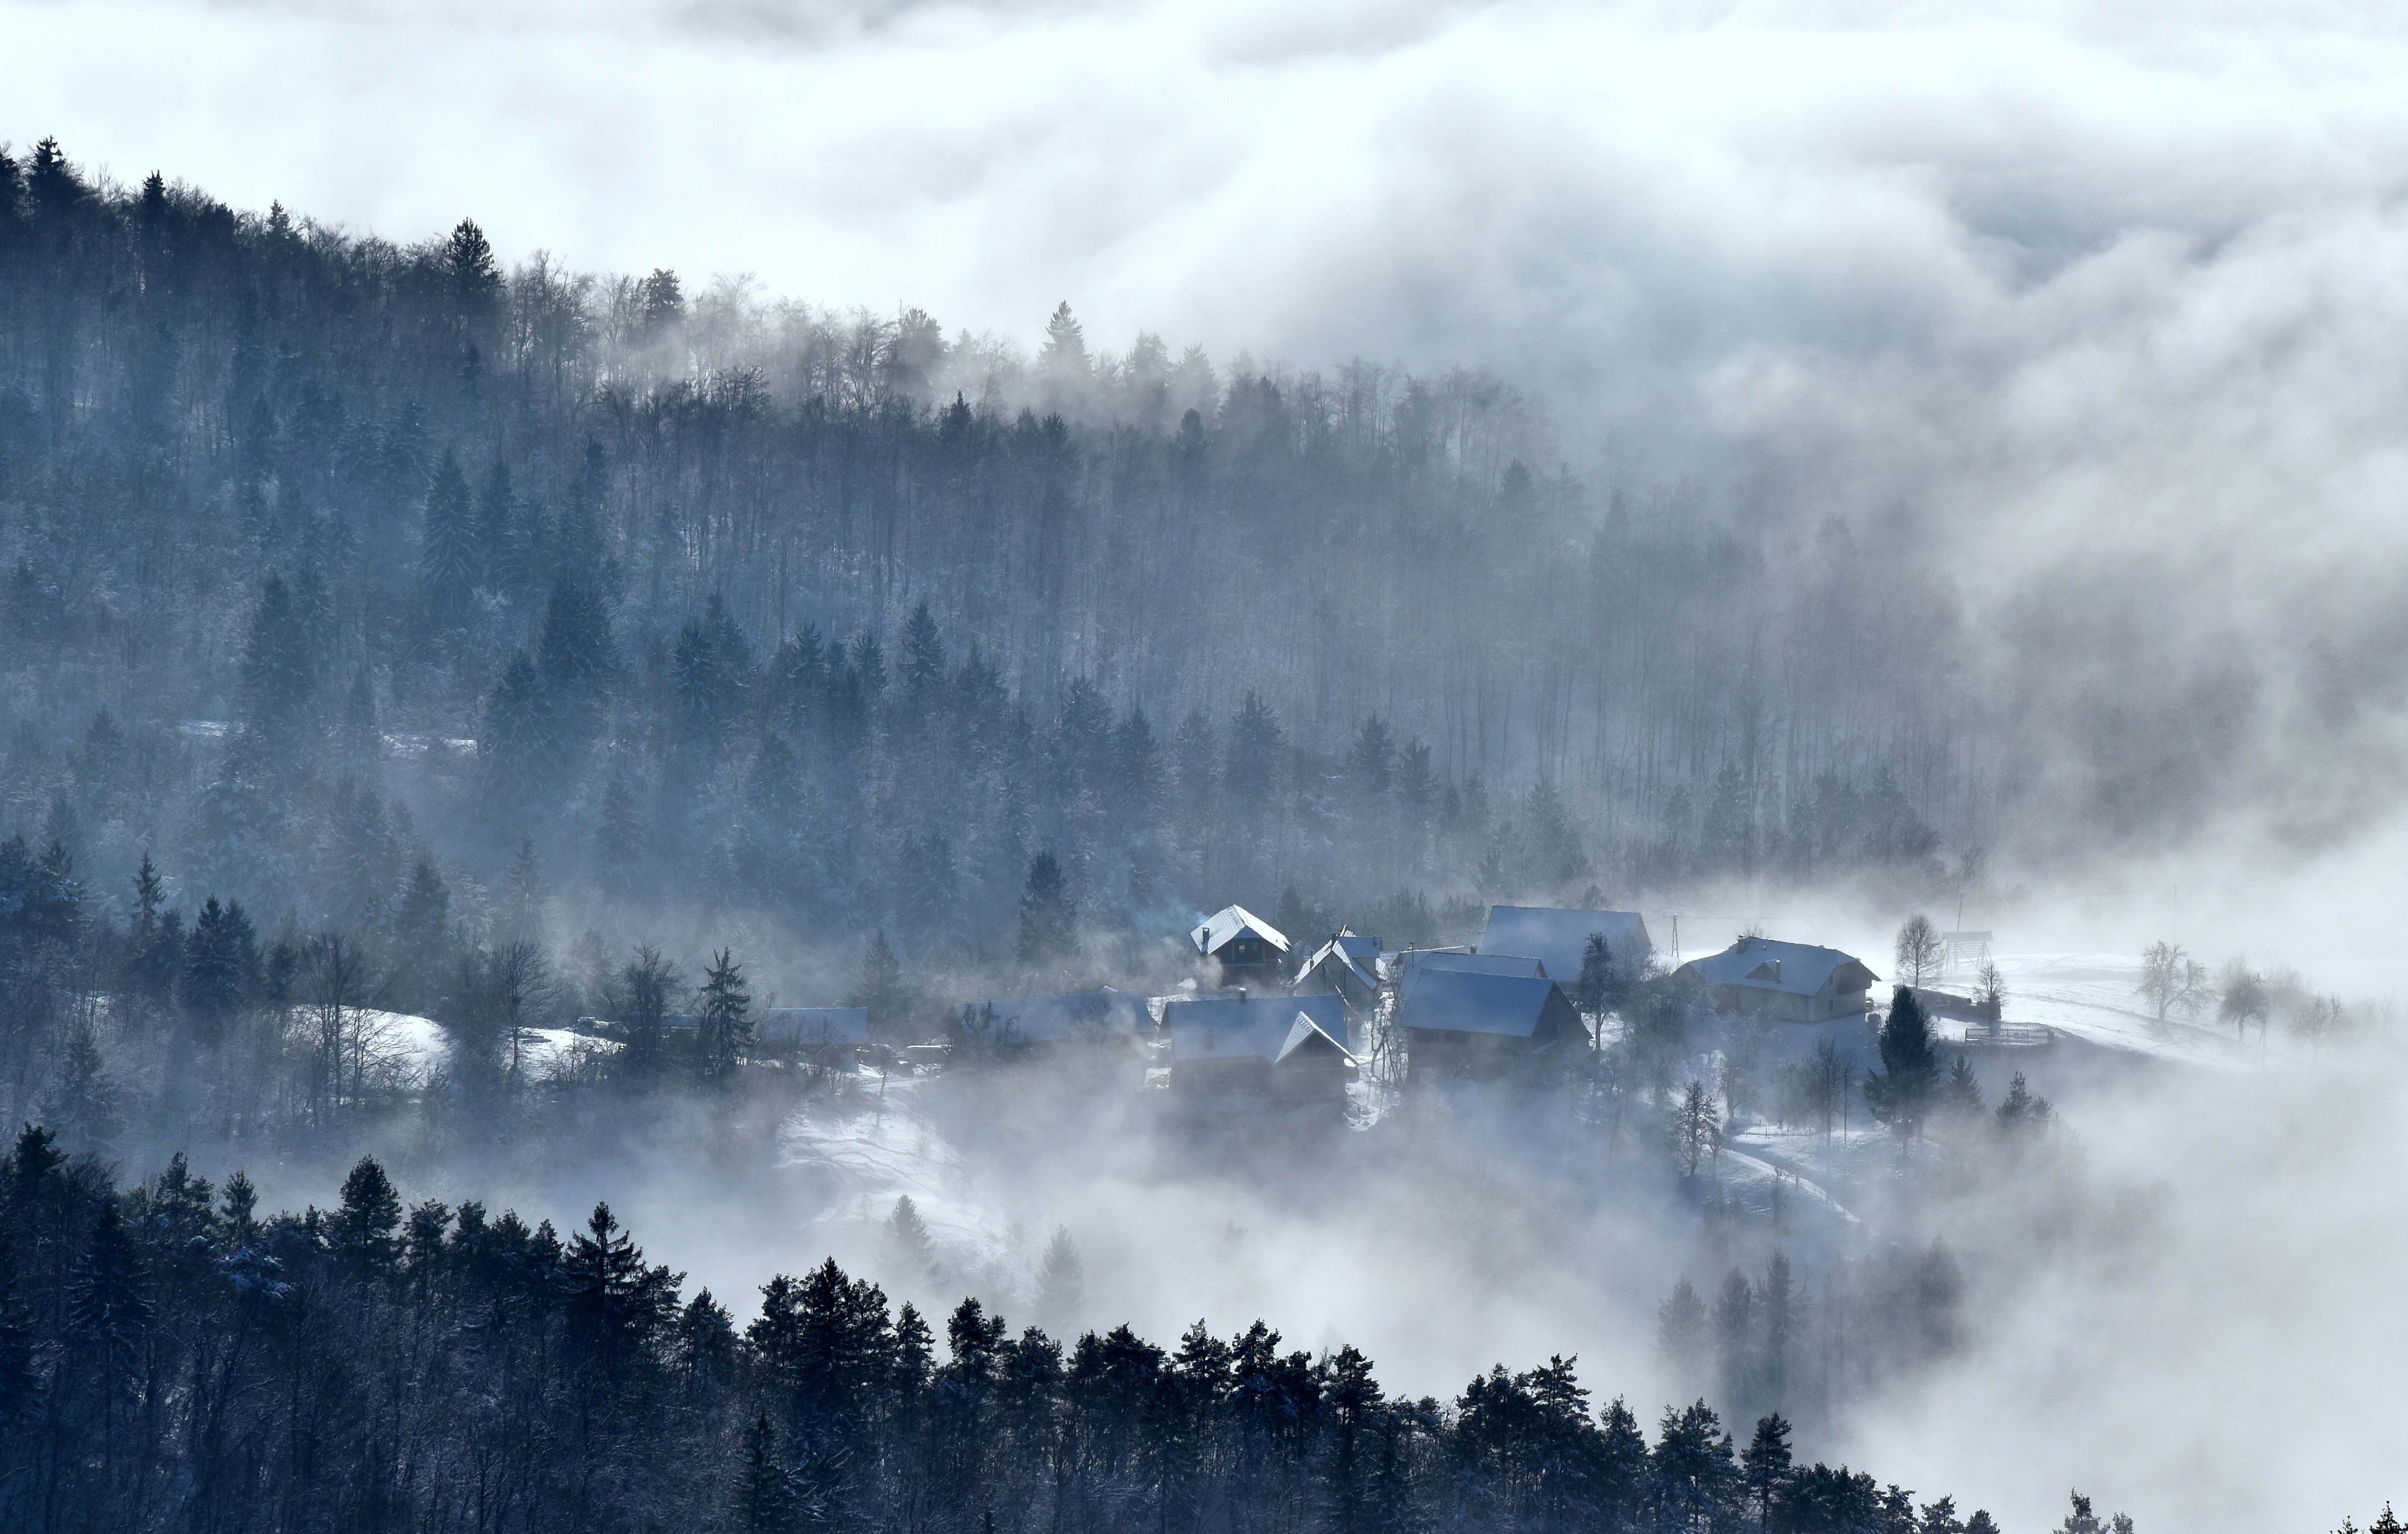 A village at the edge of a forest in dense fog in the winter